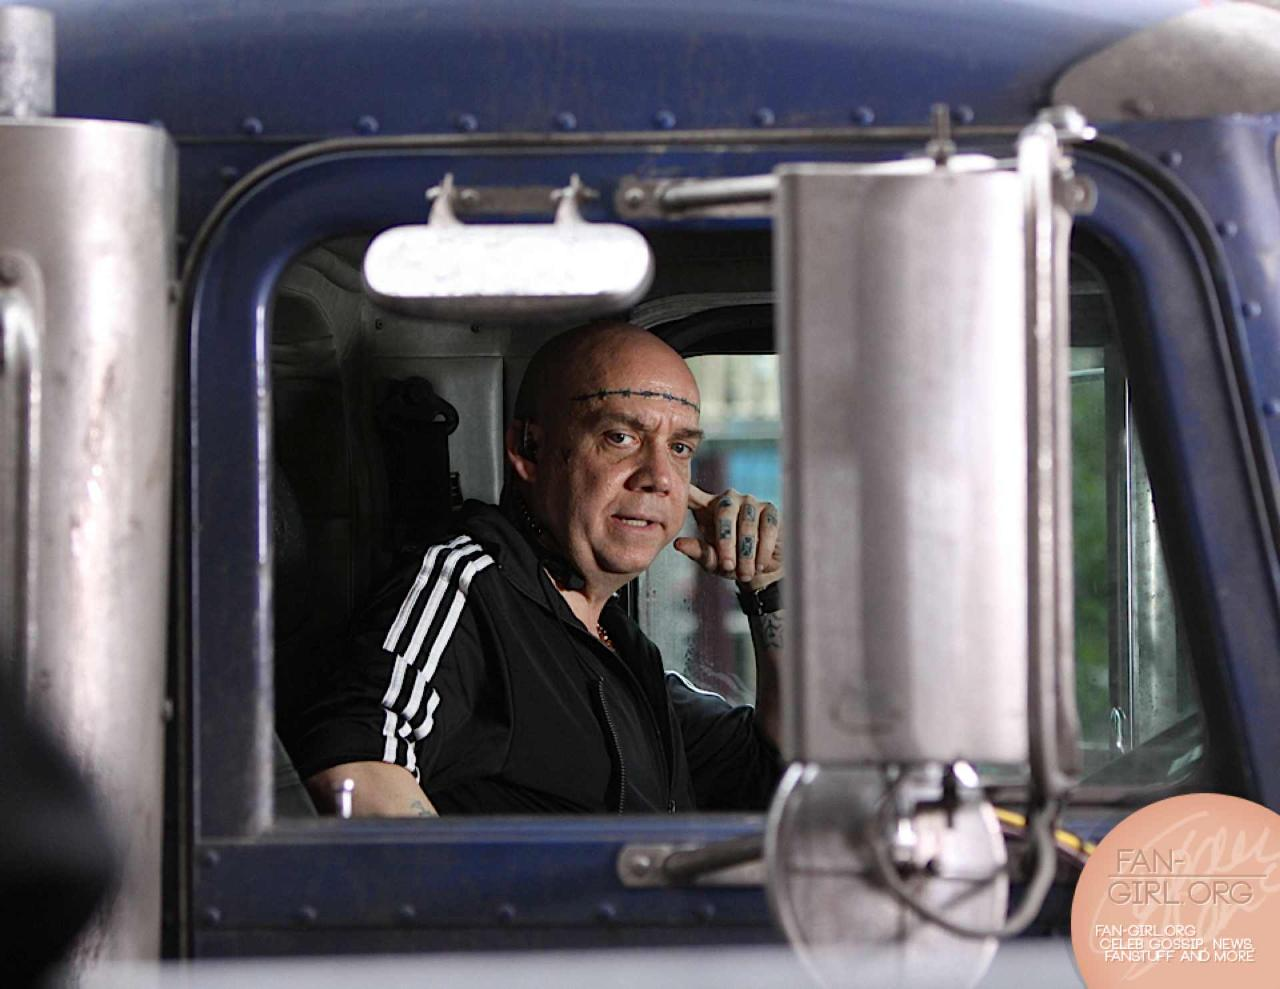 Paul Giamatti in The Amazing Spider Man 2 The Rhino 4 First Official Look at Paul Giamatti in The Amazing Spider Man 2